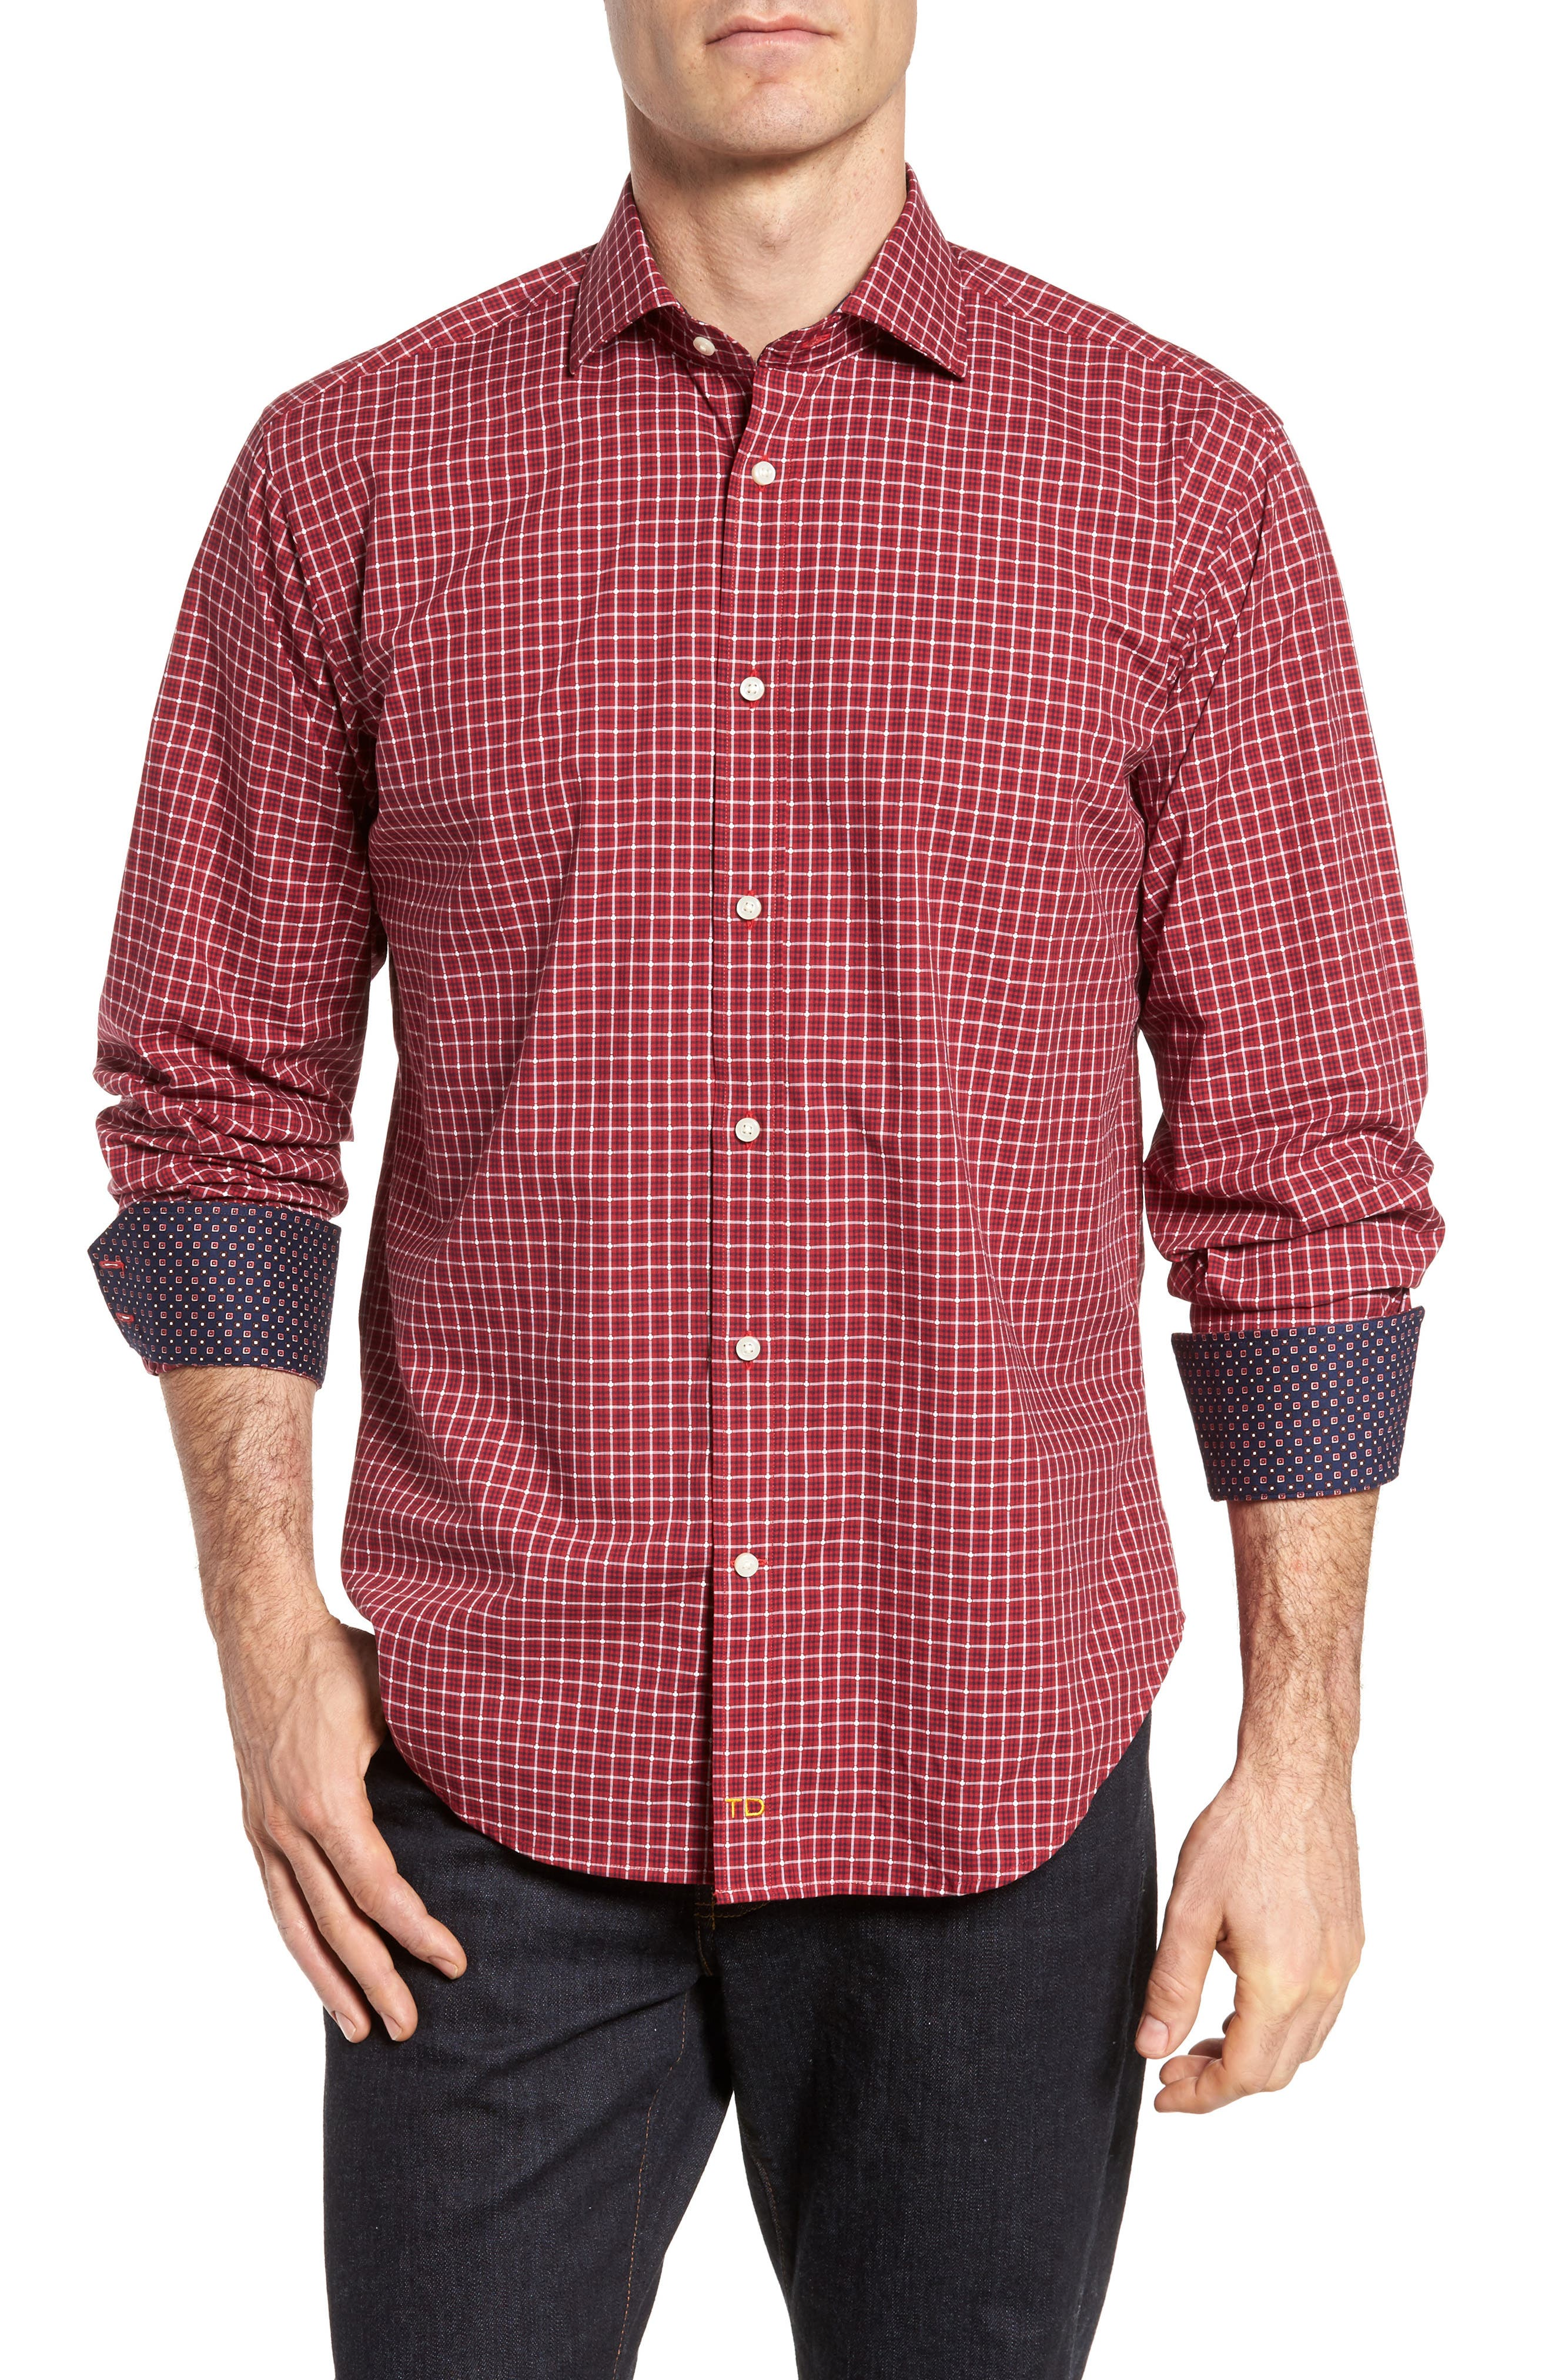 Regular Fit Plaid Sport Shirt,                             Main thumbnail 1, color,                             600